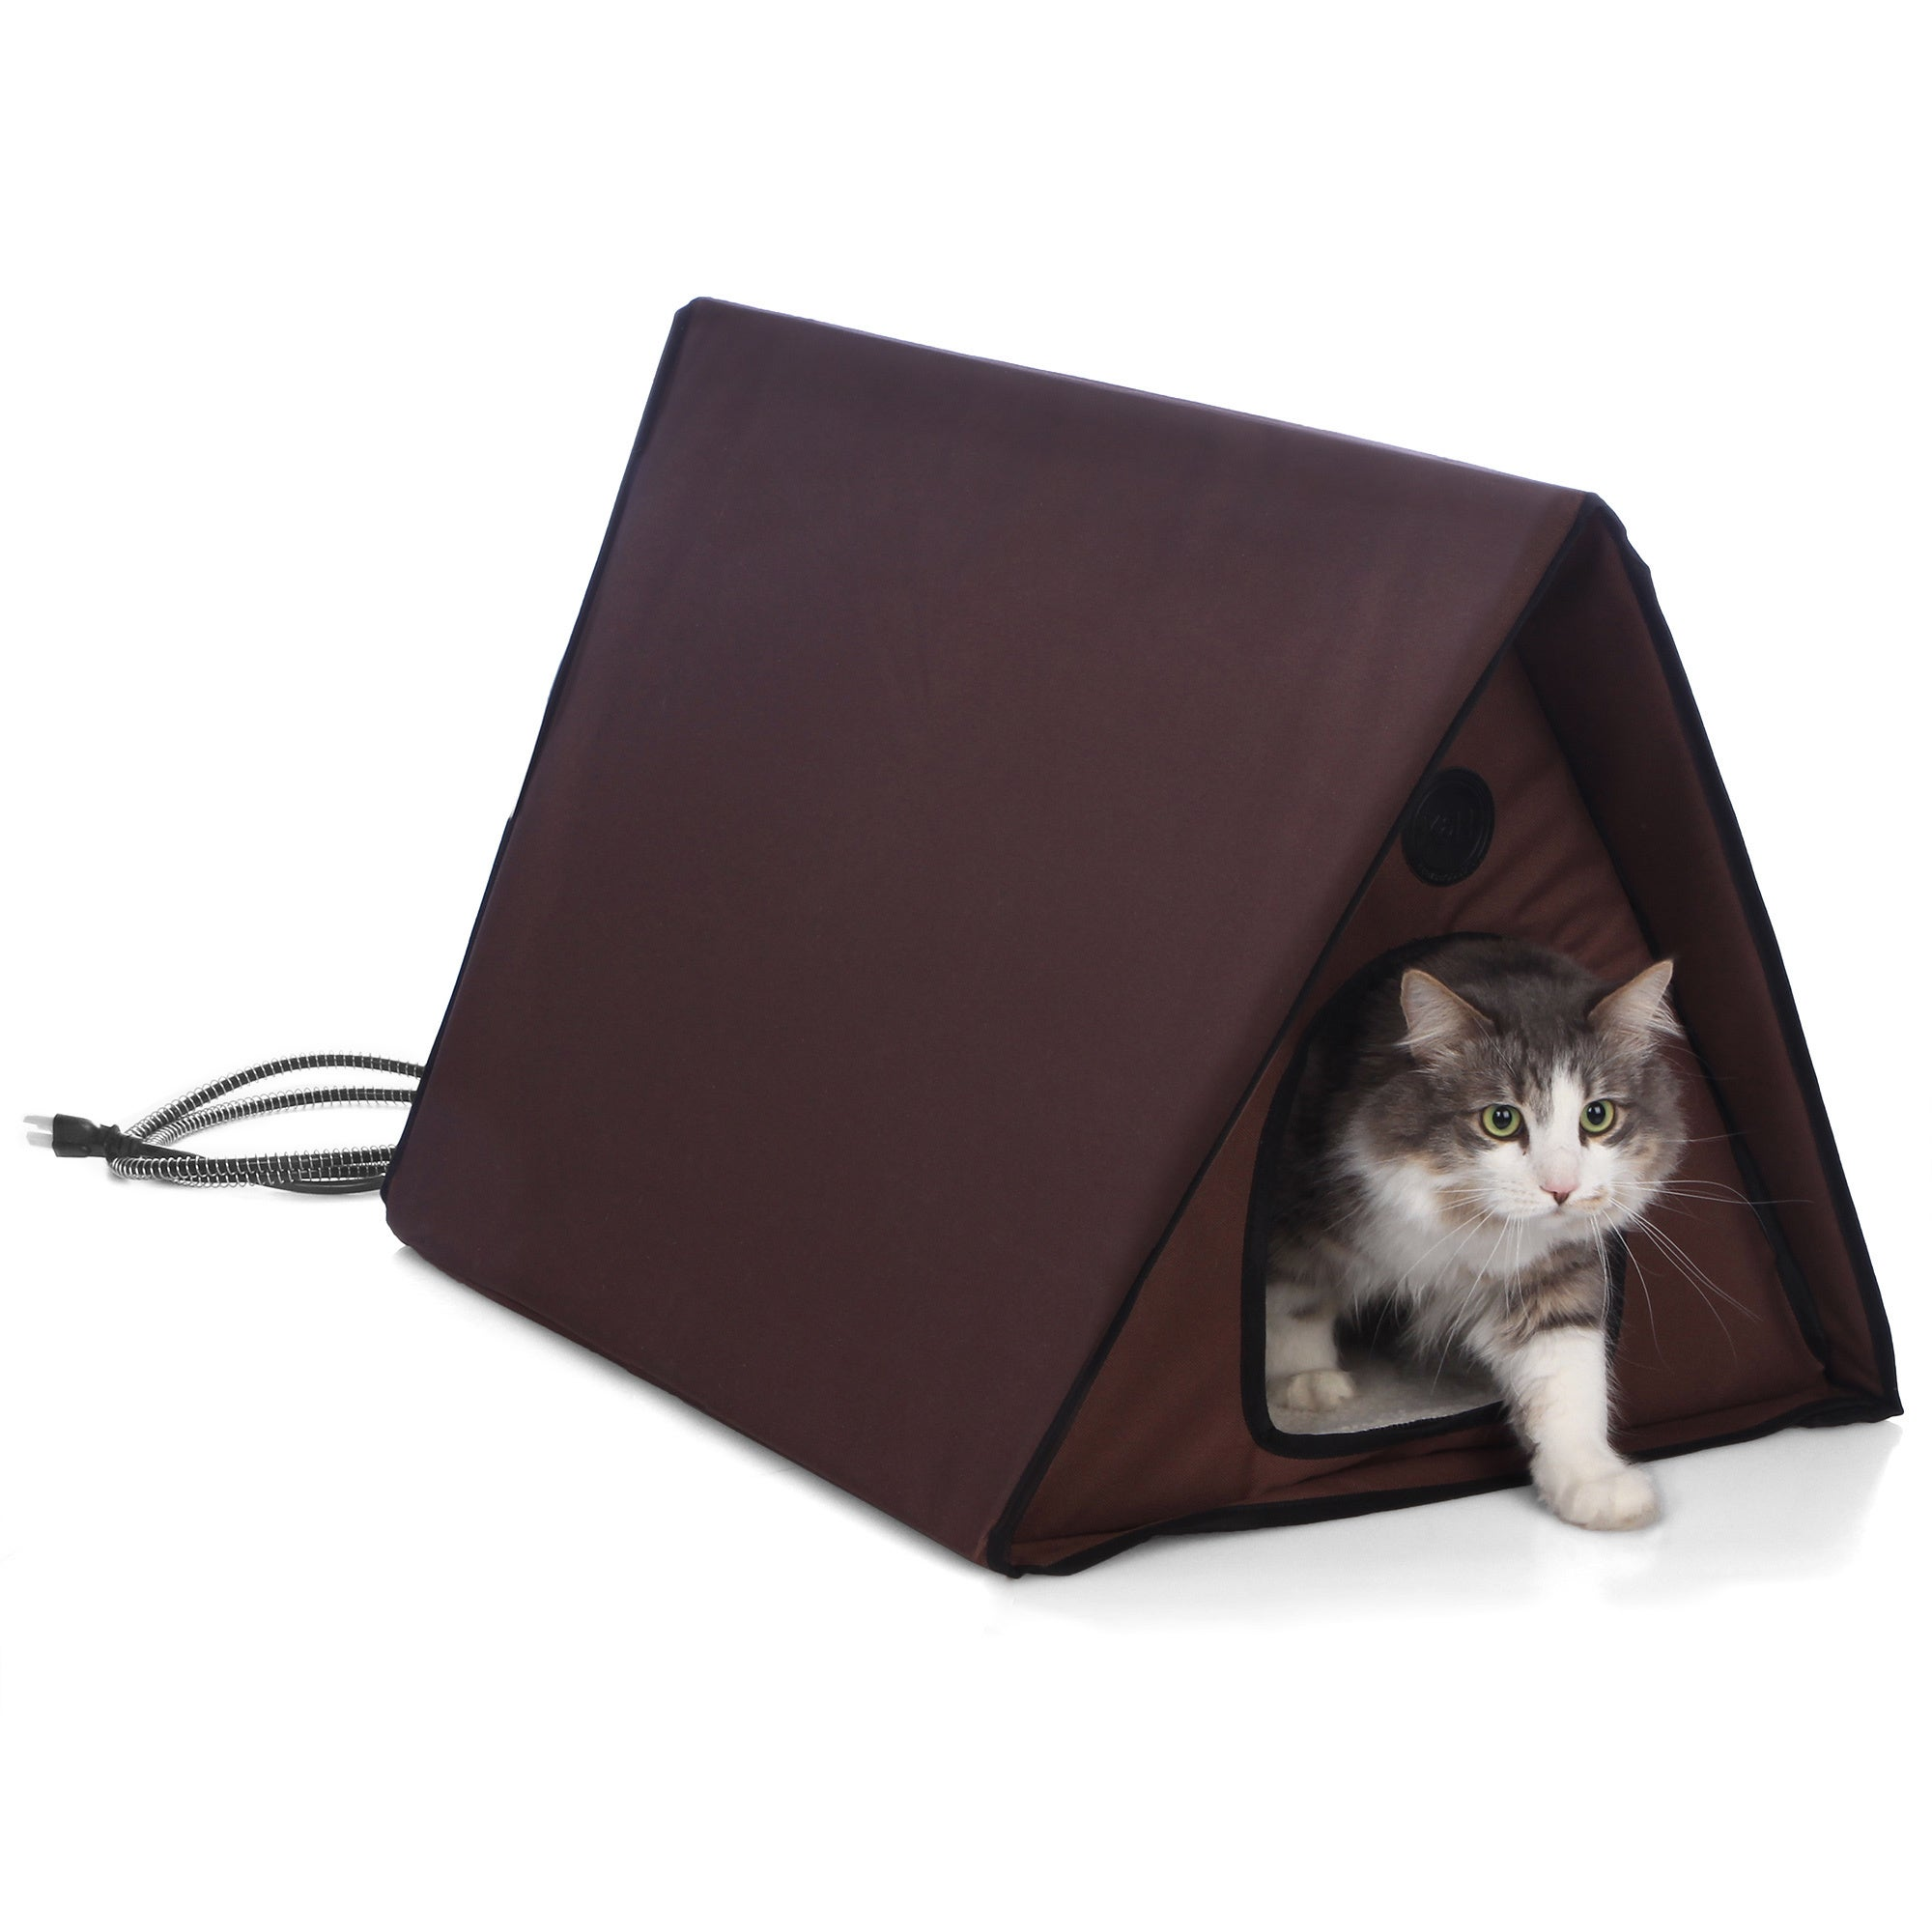 K&H Pet Products Heated Multiple Cat A-frame Outdoor Kitt...